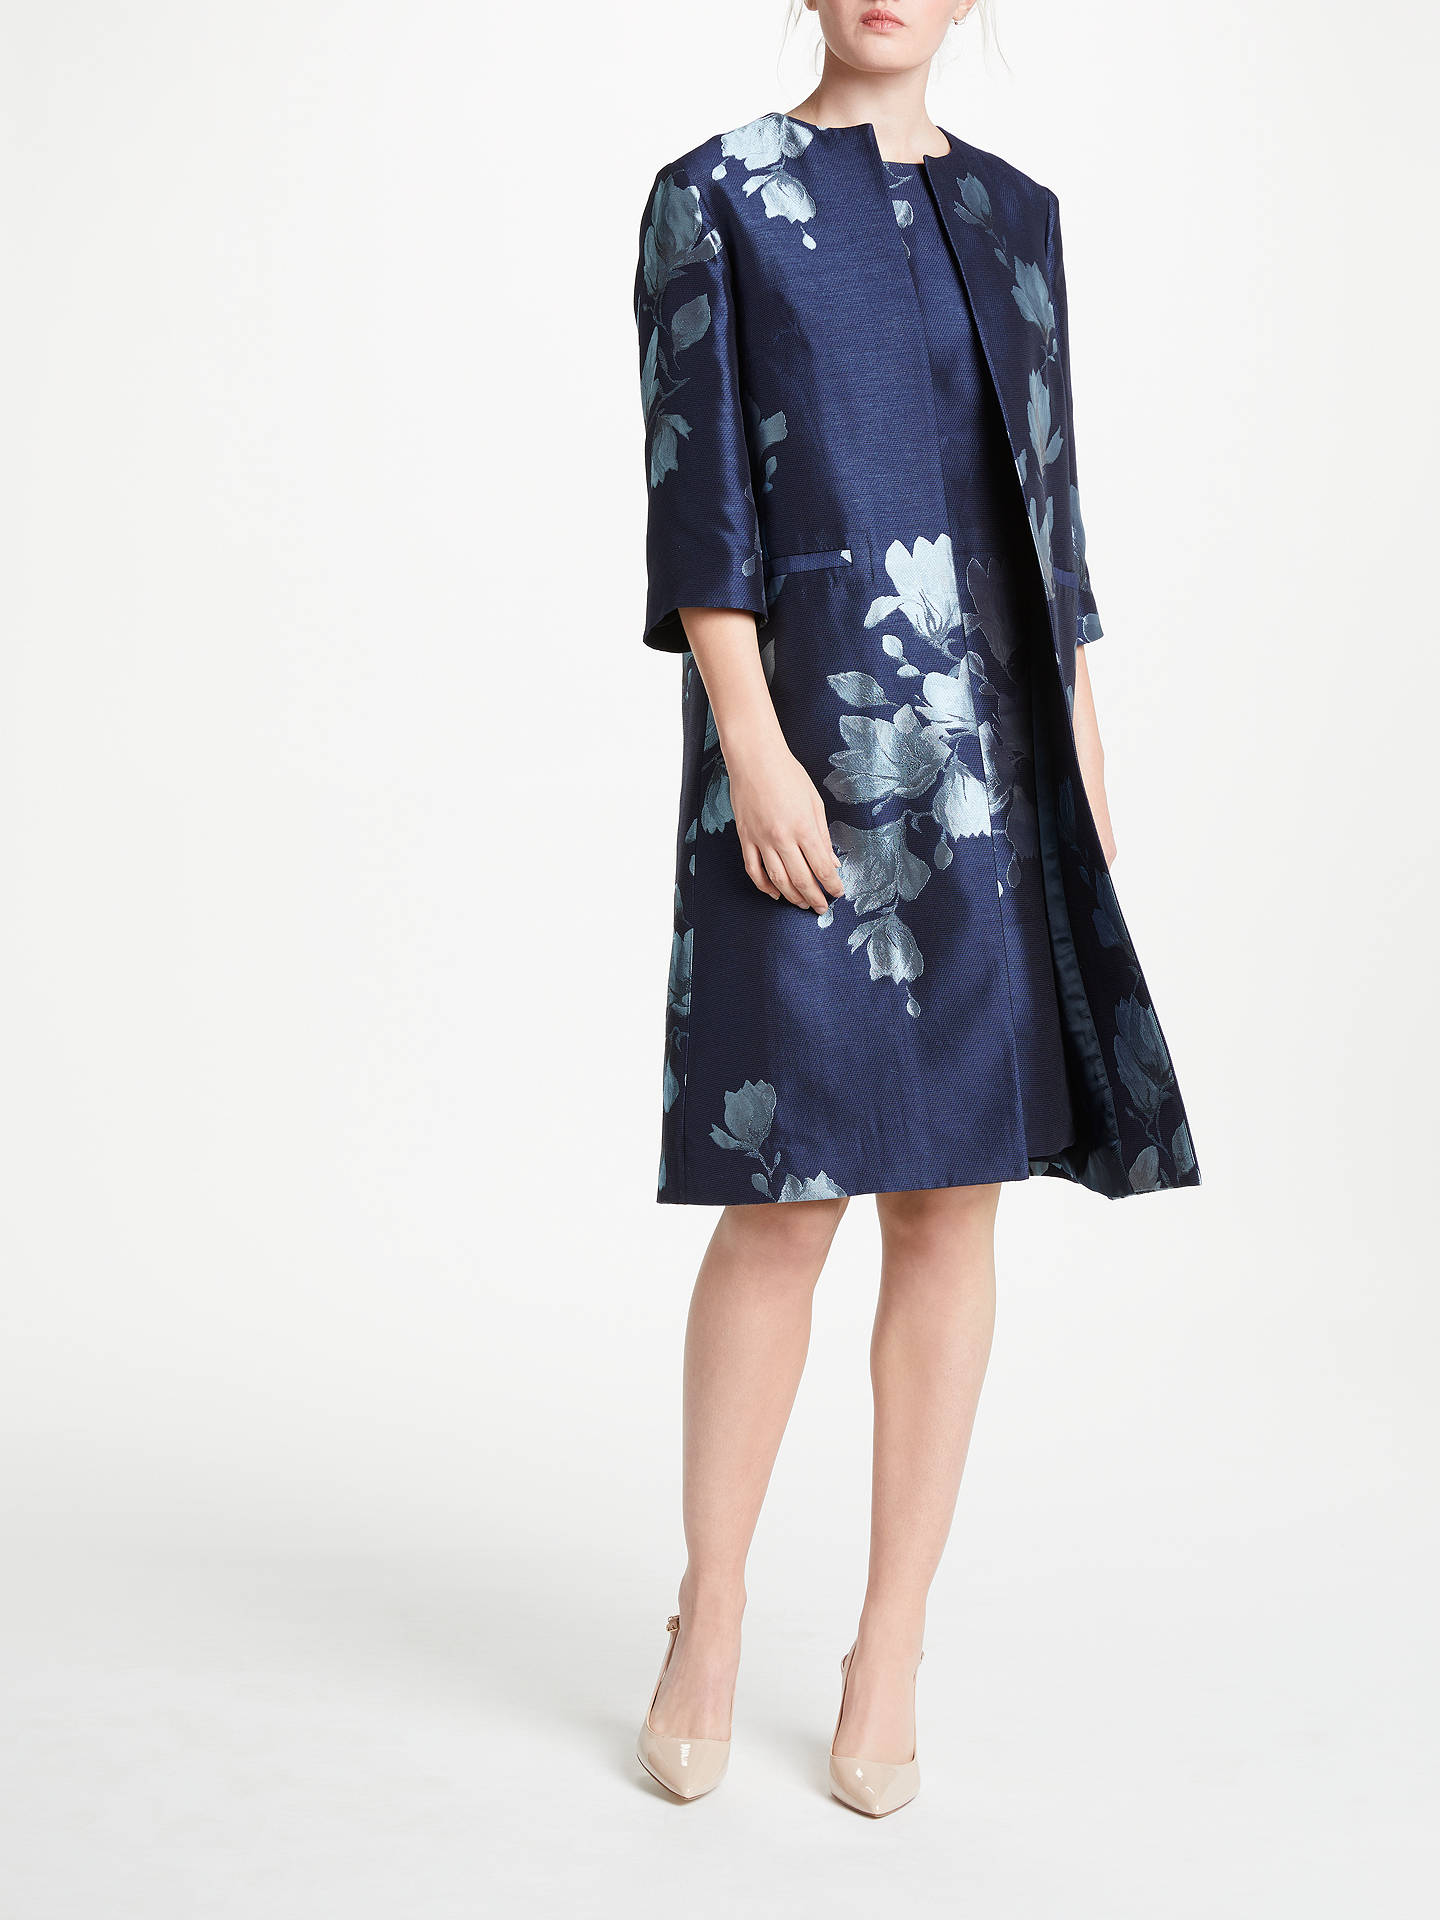 BuyBruce by Bruce Oldfield Jacquard Print Frock Coat, Navy/Ivory, 16 Online at johnlewis.com